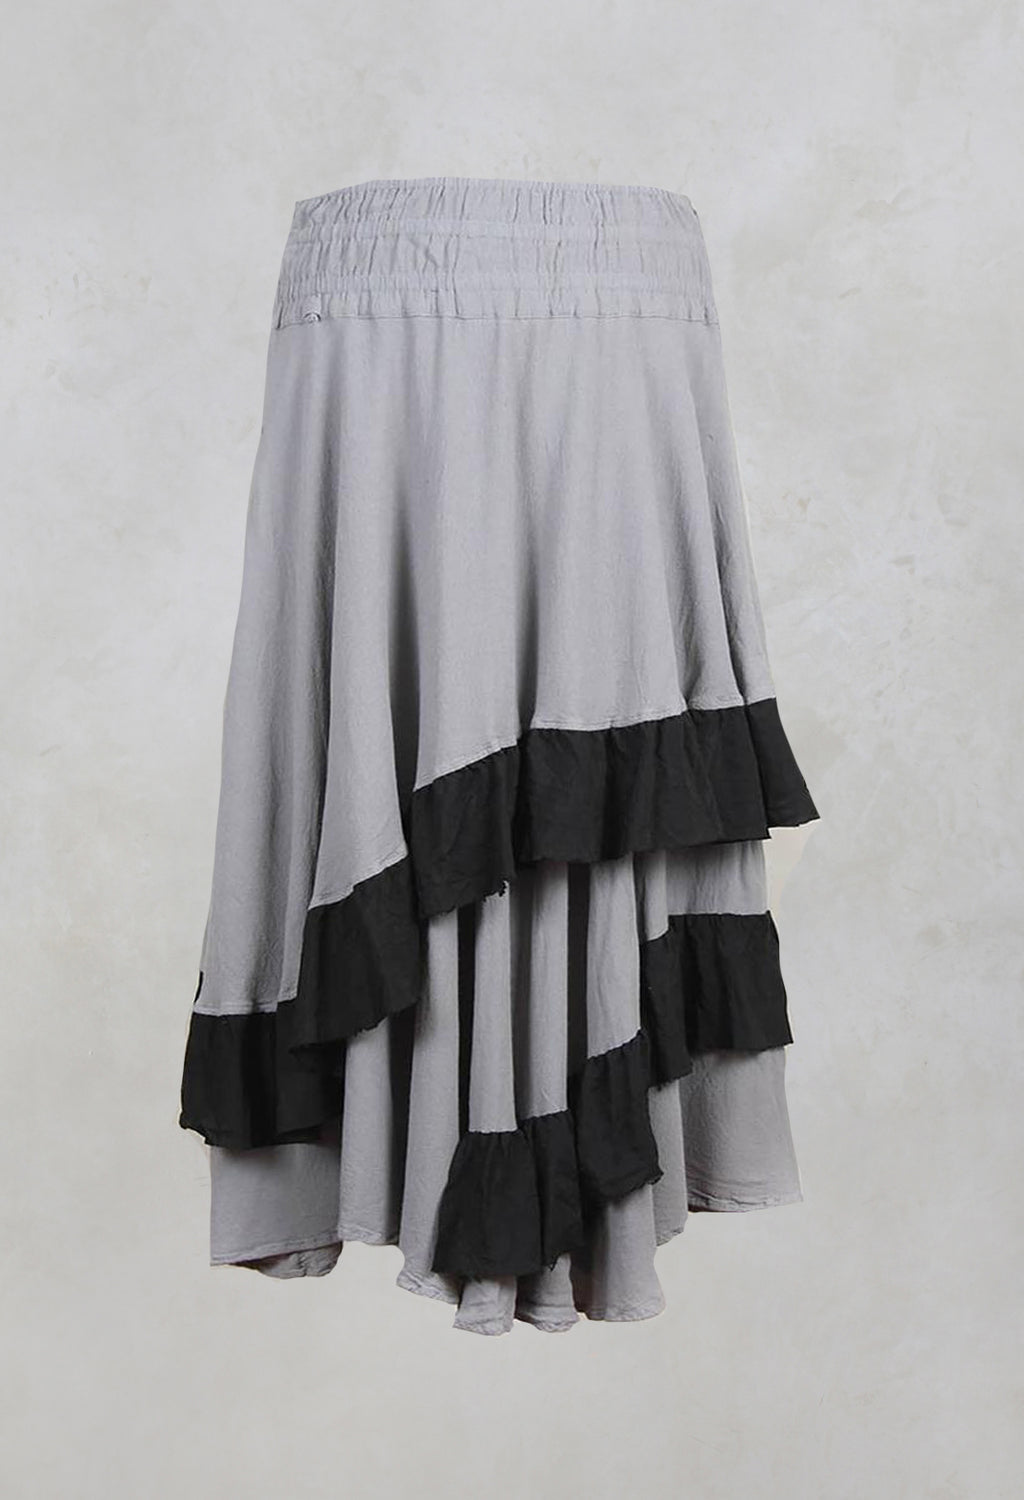 Tiered Skirt with Contrasting Ruffles in Seele